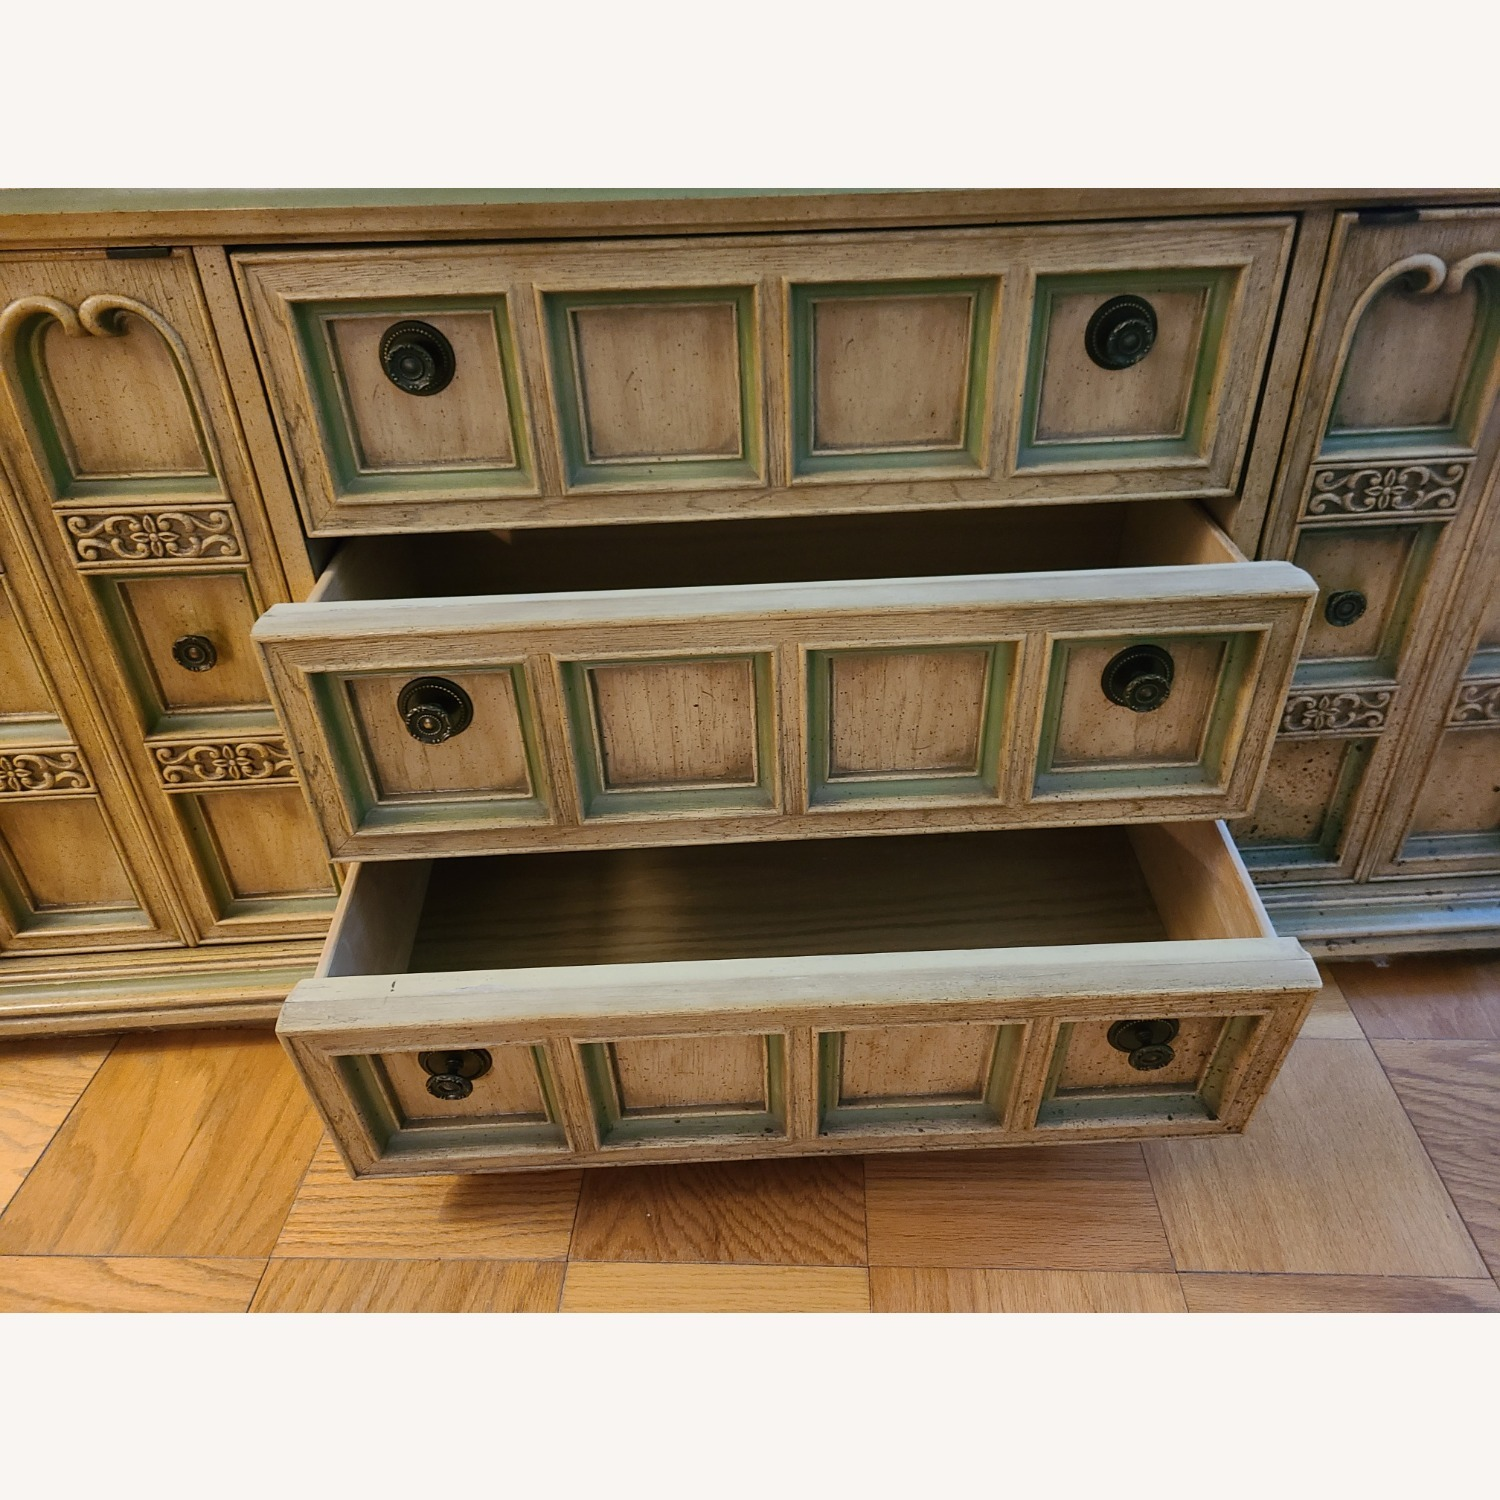 Vintage Wood and Glass Wall Unit - image-11